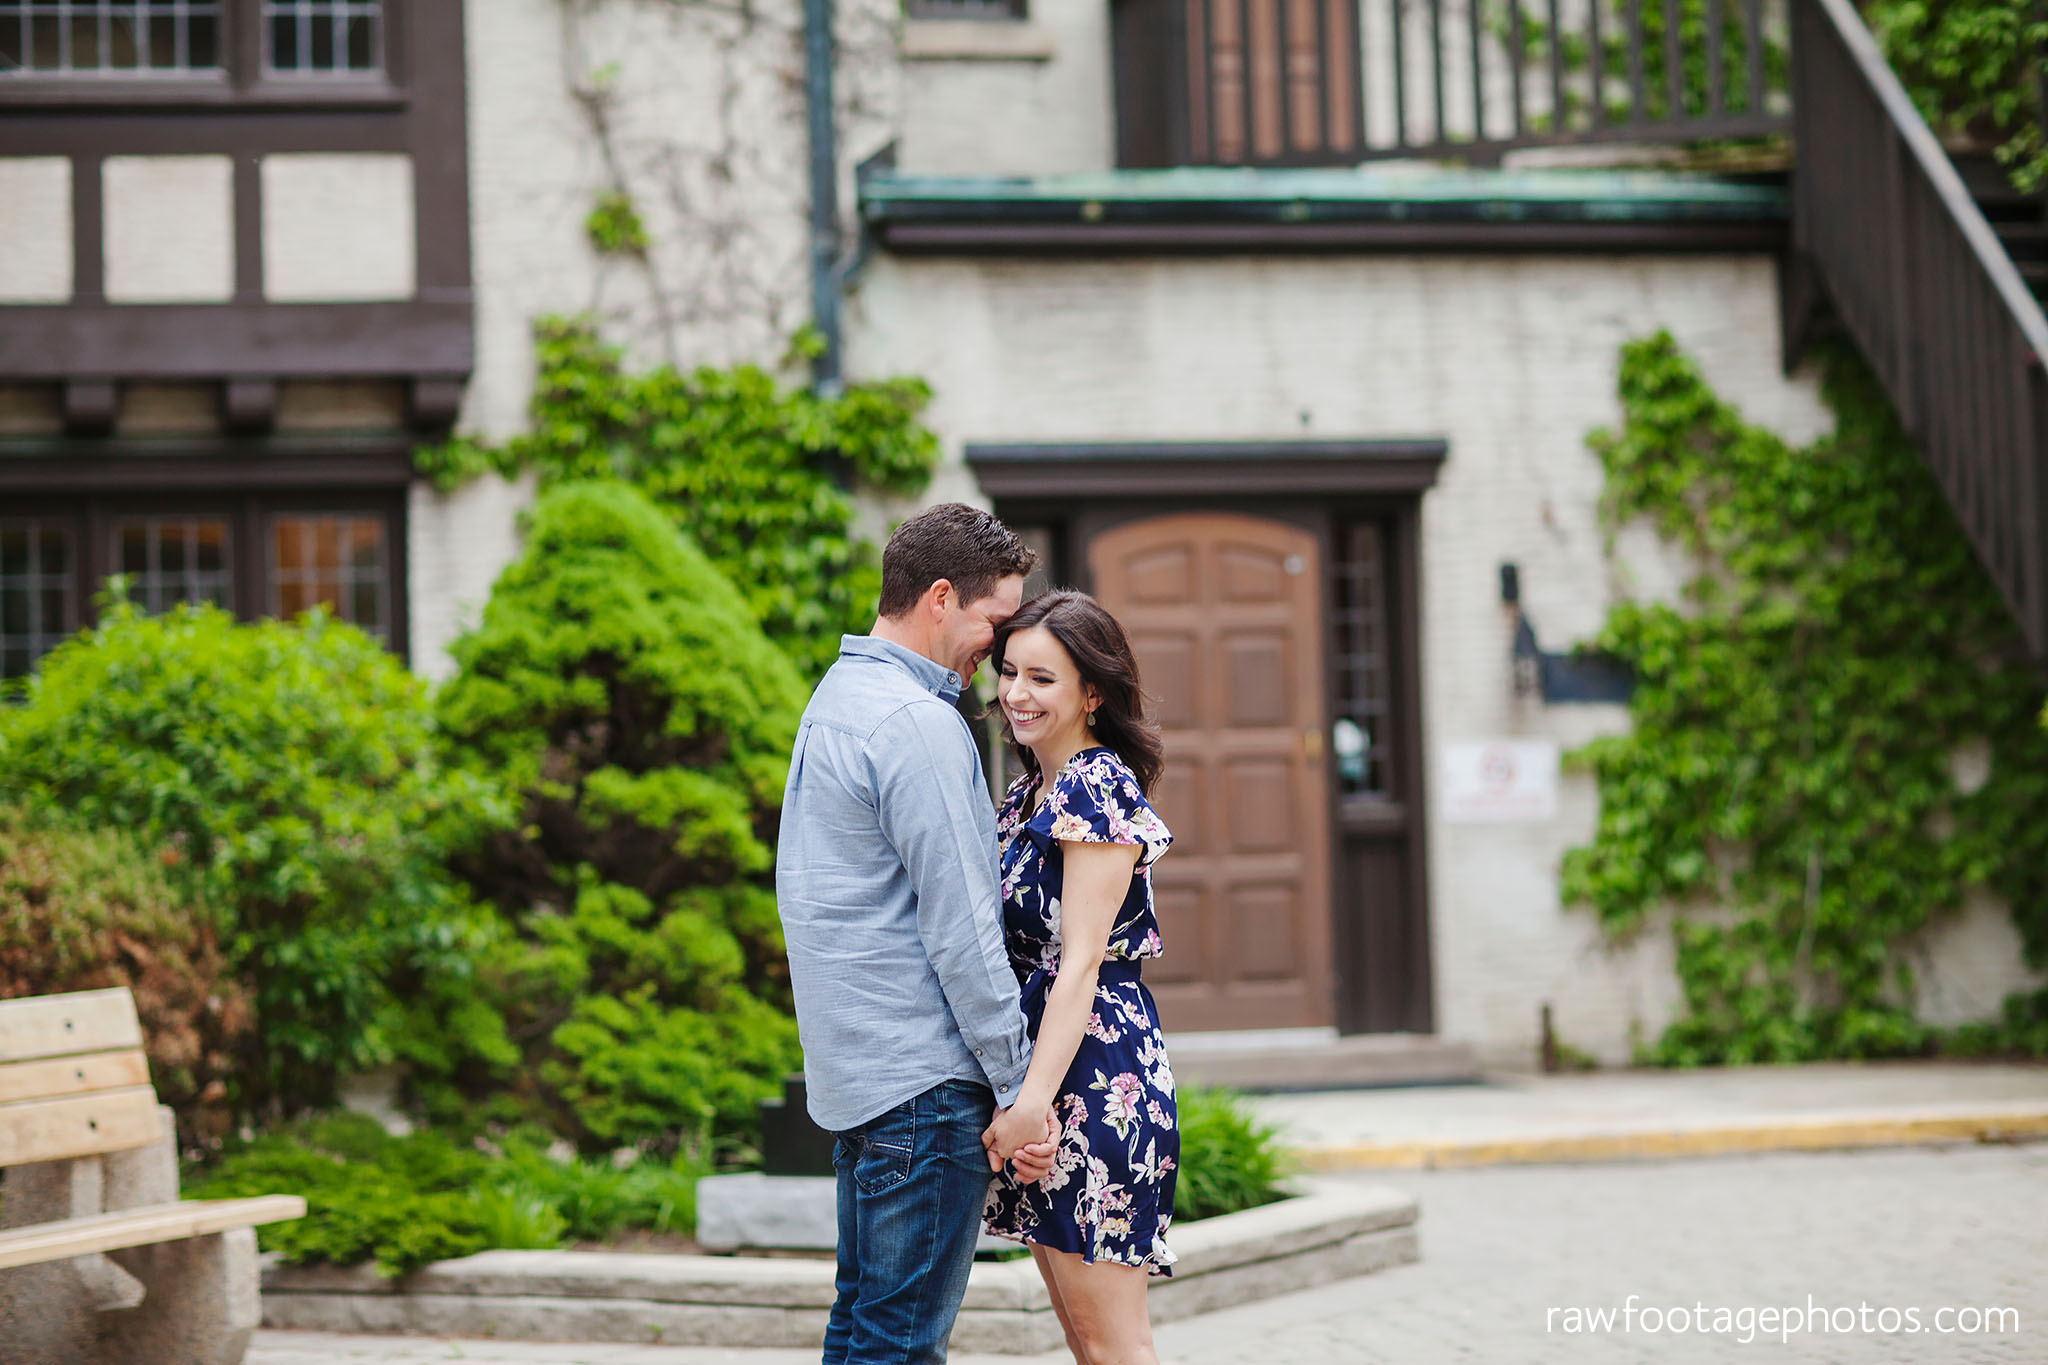 london_ontario_wedding_photographer-raw_footage_photography-engagement_session-campus_session-kings_college-uwo-spring_blooms006.jpg